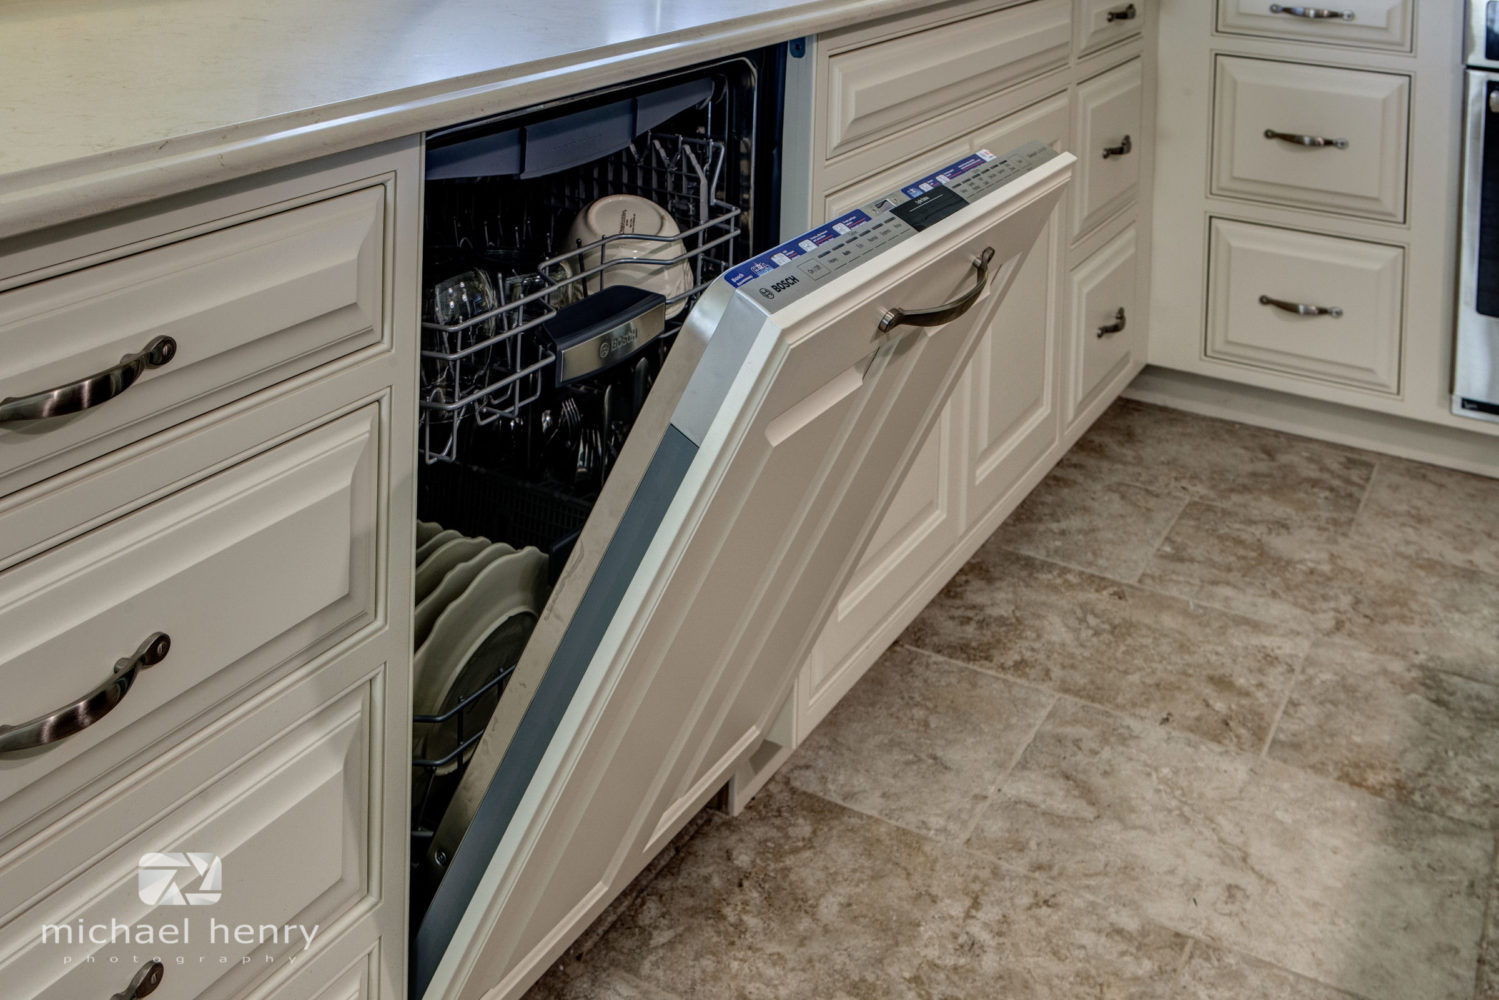 Dishwasher in new Kitchen